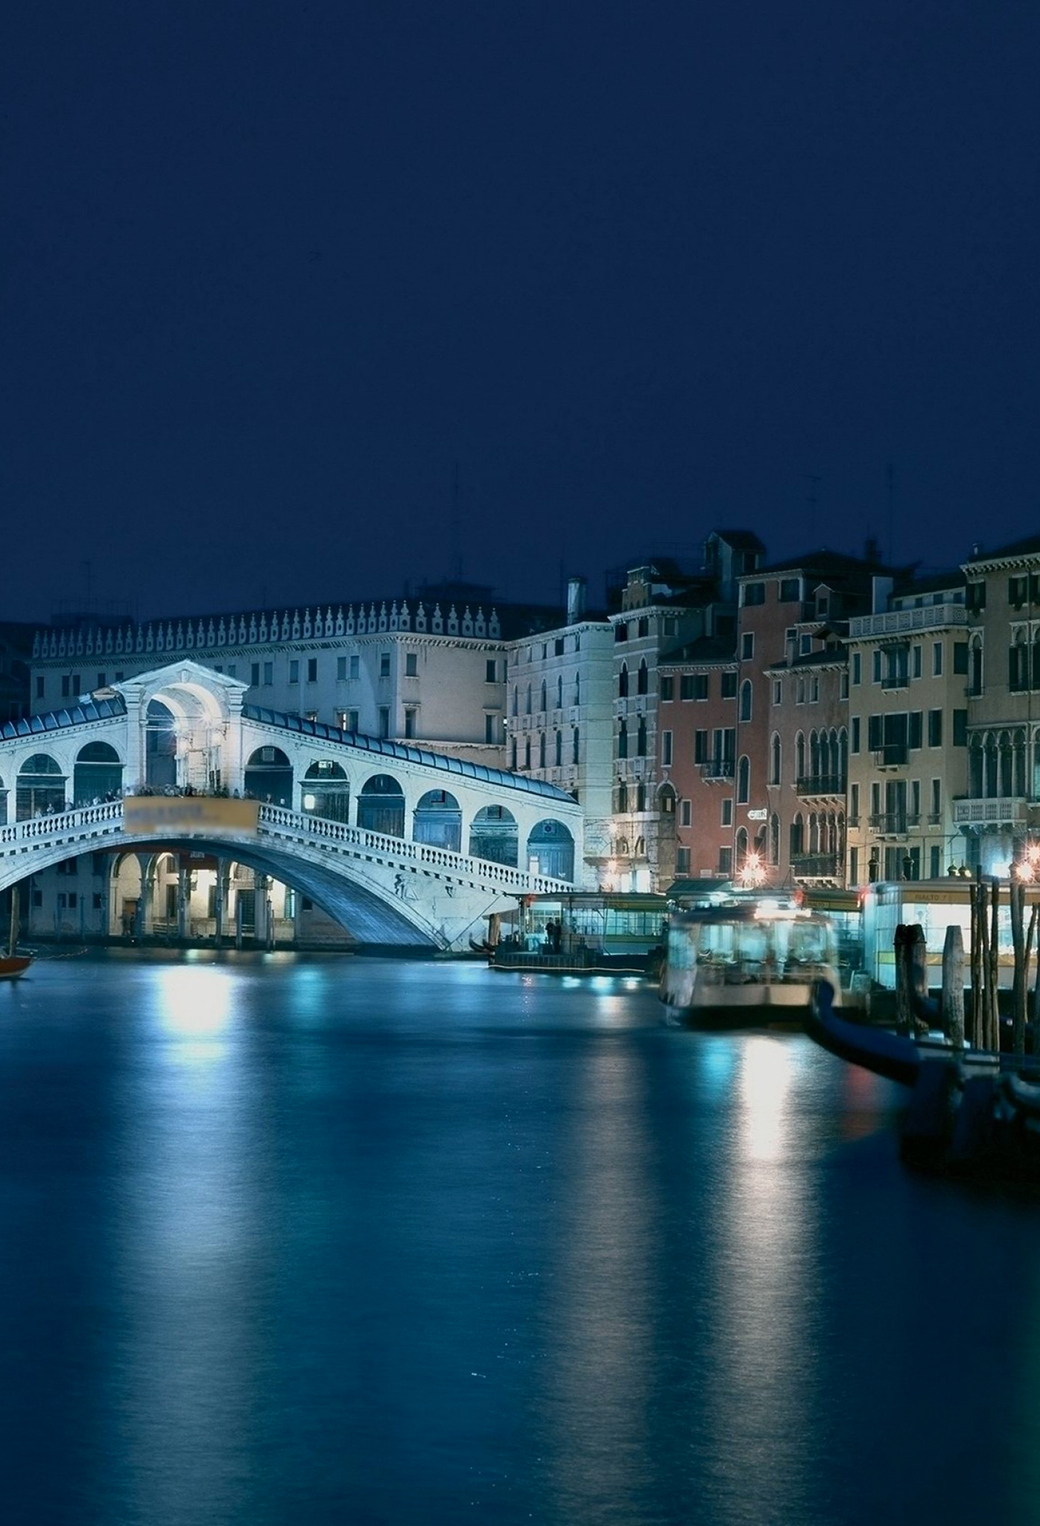 New Hd Wallpaper Girl Download Venise Italie Architecture Wallpaper For Iphone X 8 7 6